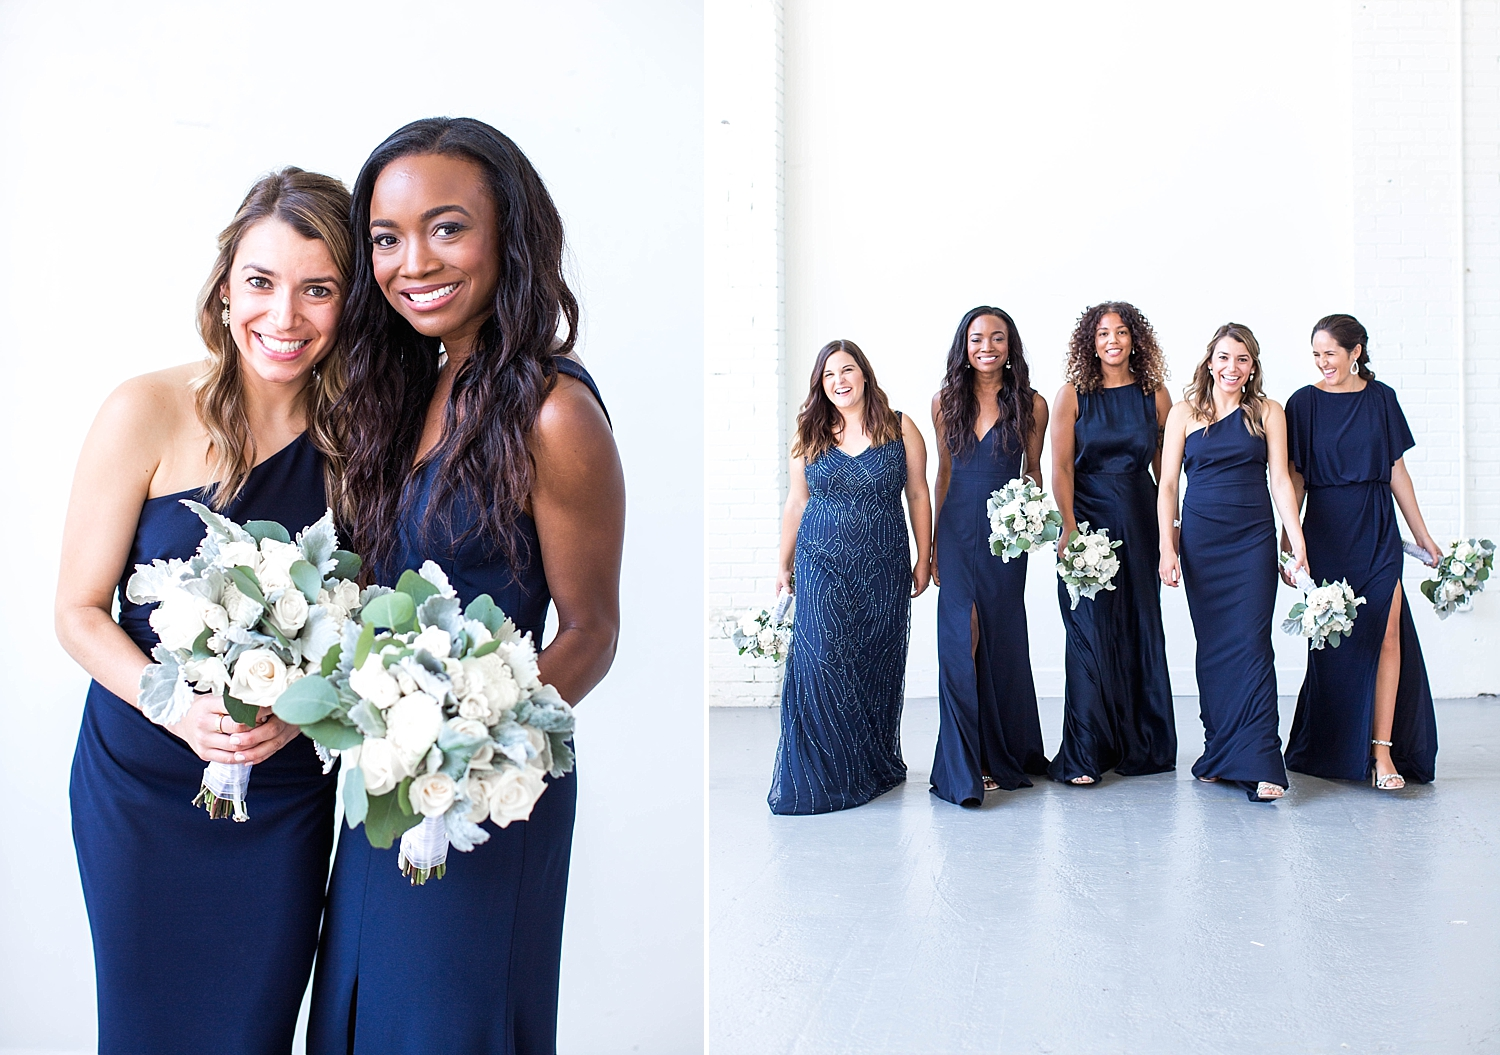 BHLDN Bridesmaids Dresses Campaign Philadelphia New Jersey Wedding Fashion Photography by Kelee Bovelle_0014.jpg